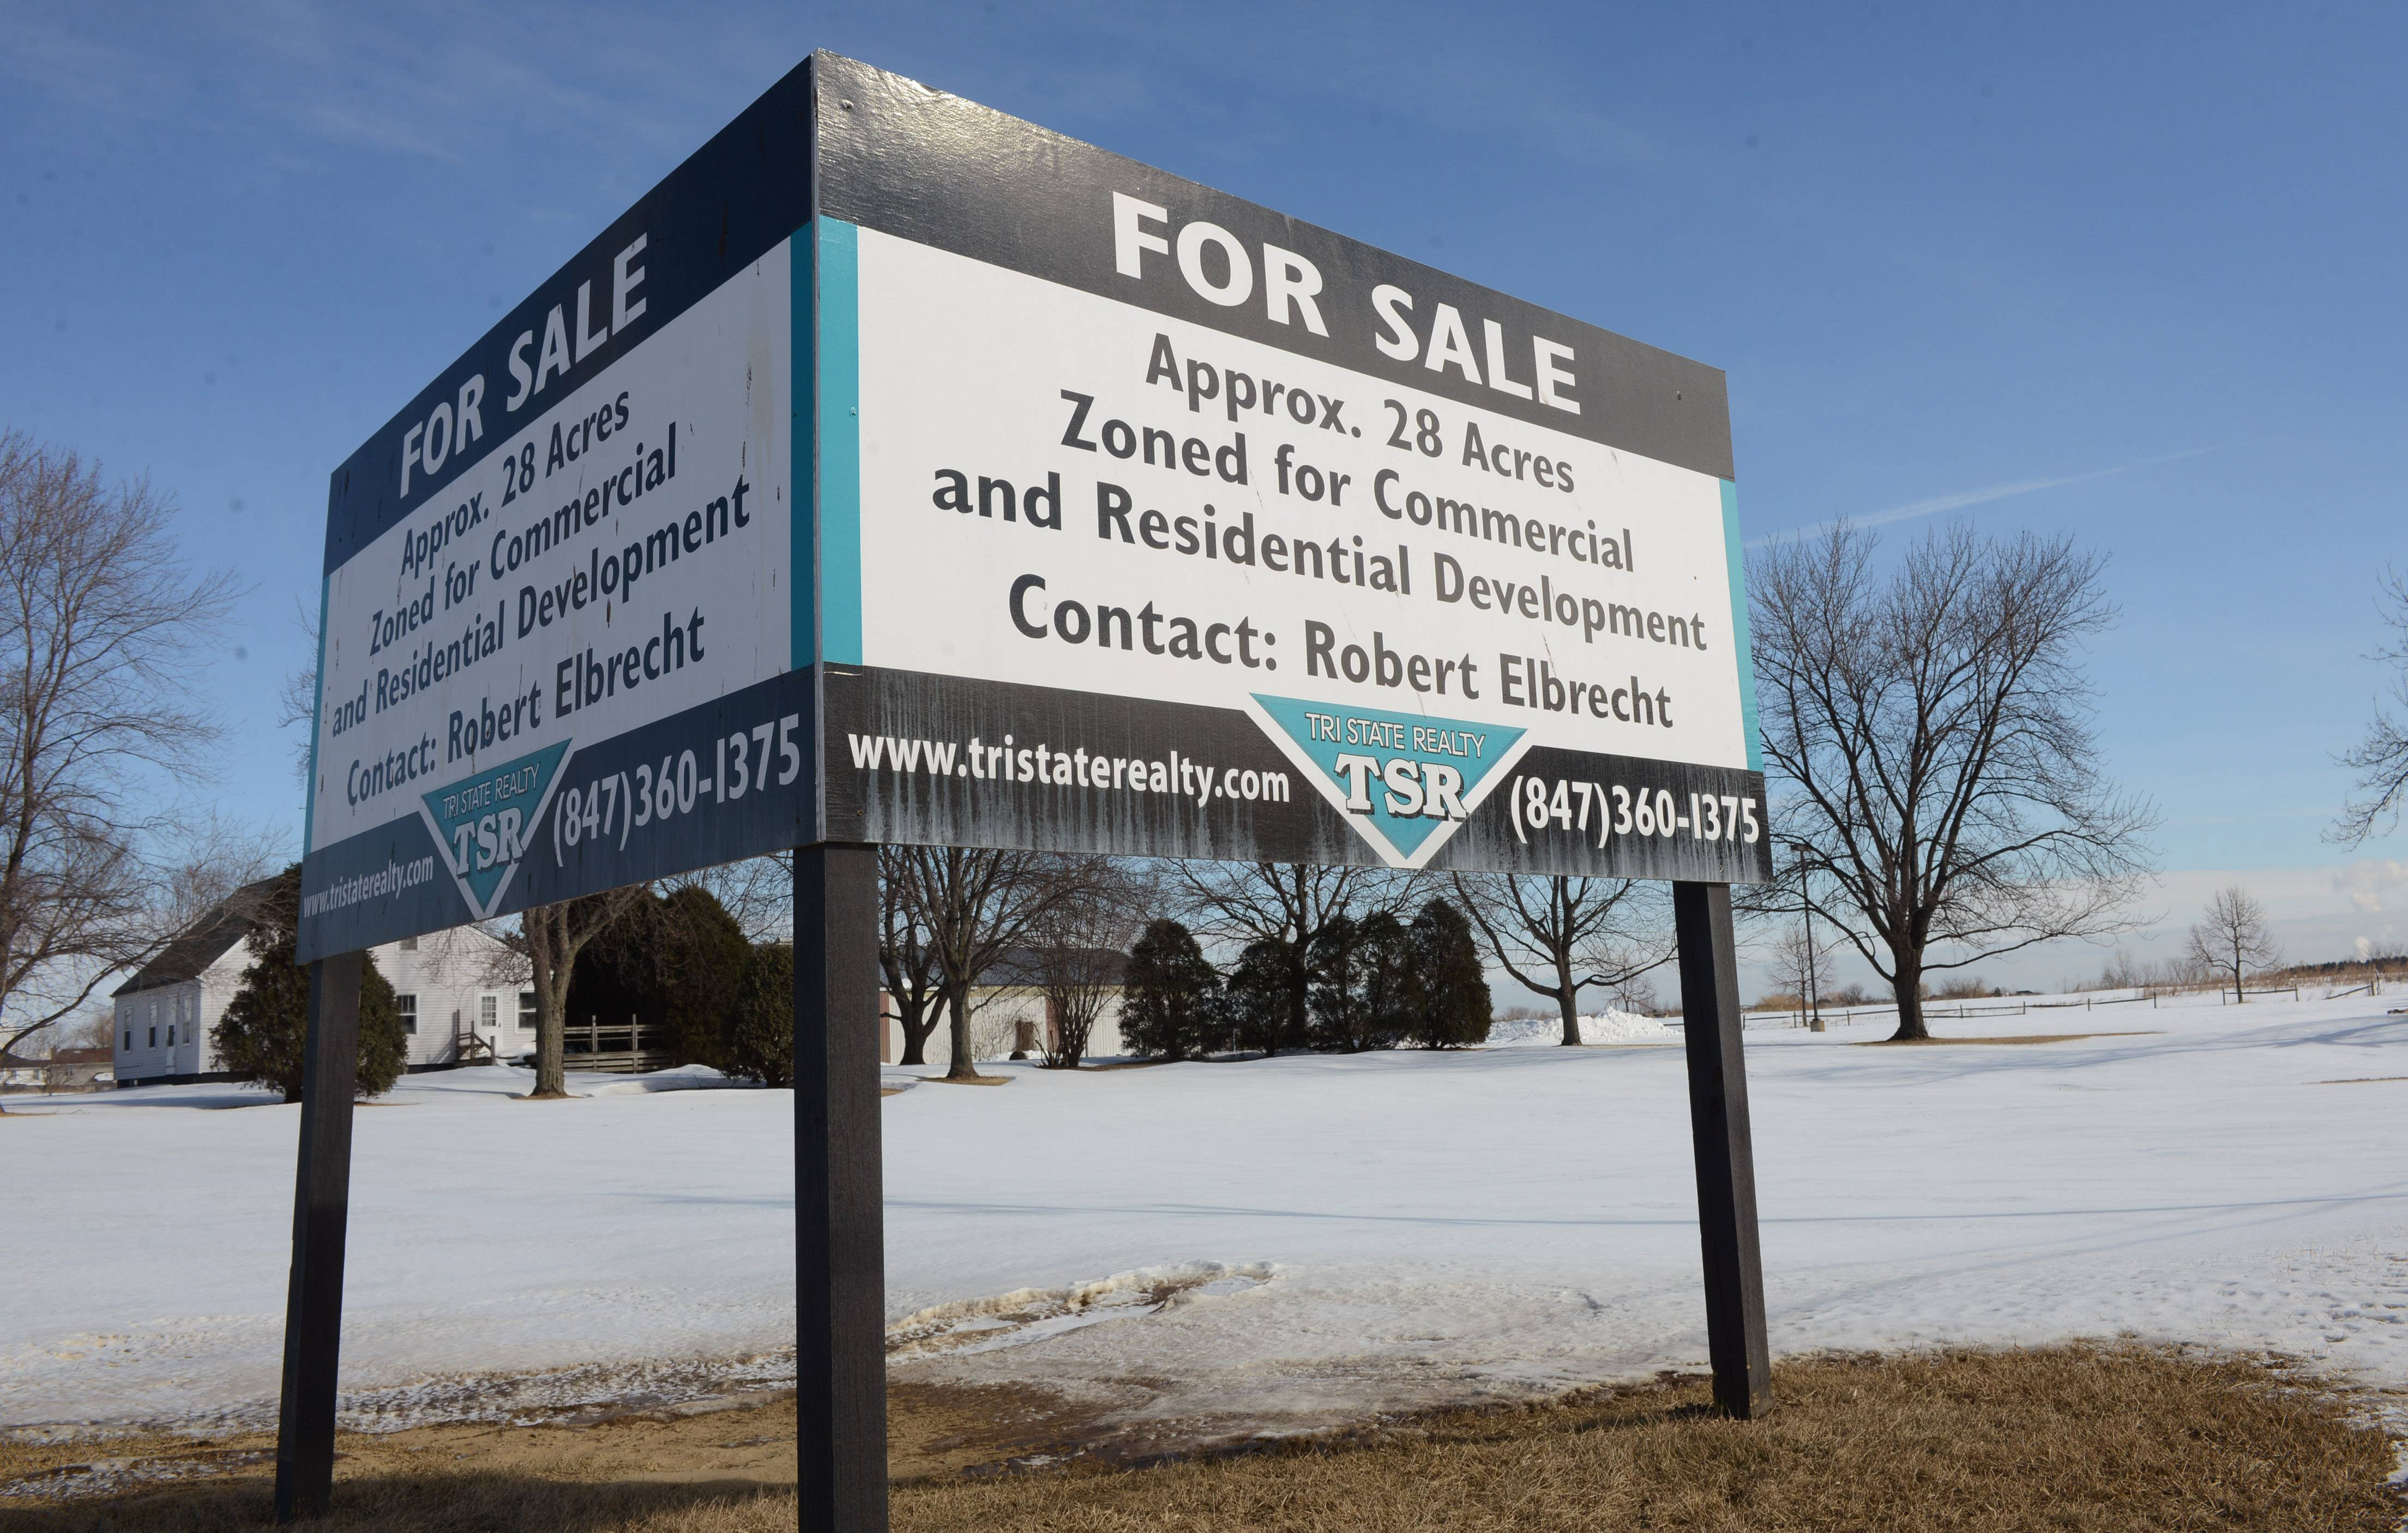 Tentative plans have surfaced for 100 homes that would be built on the former Bobby's Driving Range at Gages Lake and Hunt Club roads in Gurnee.